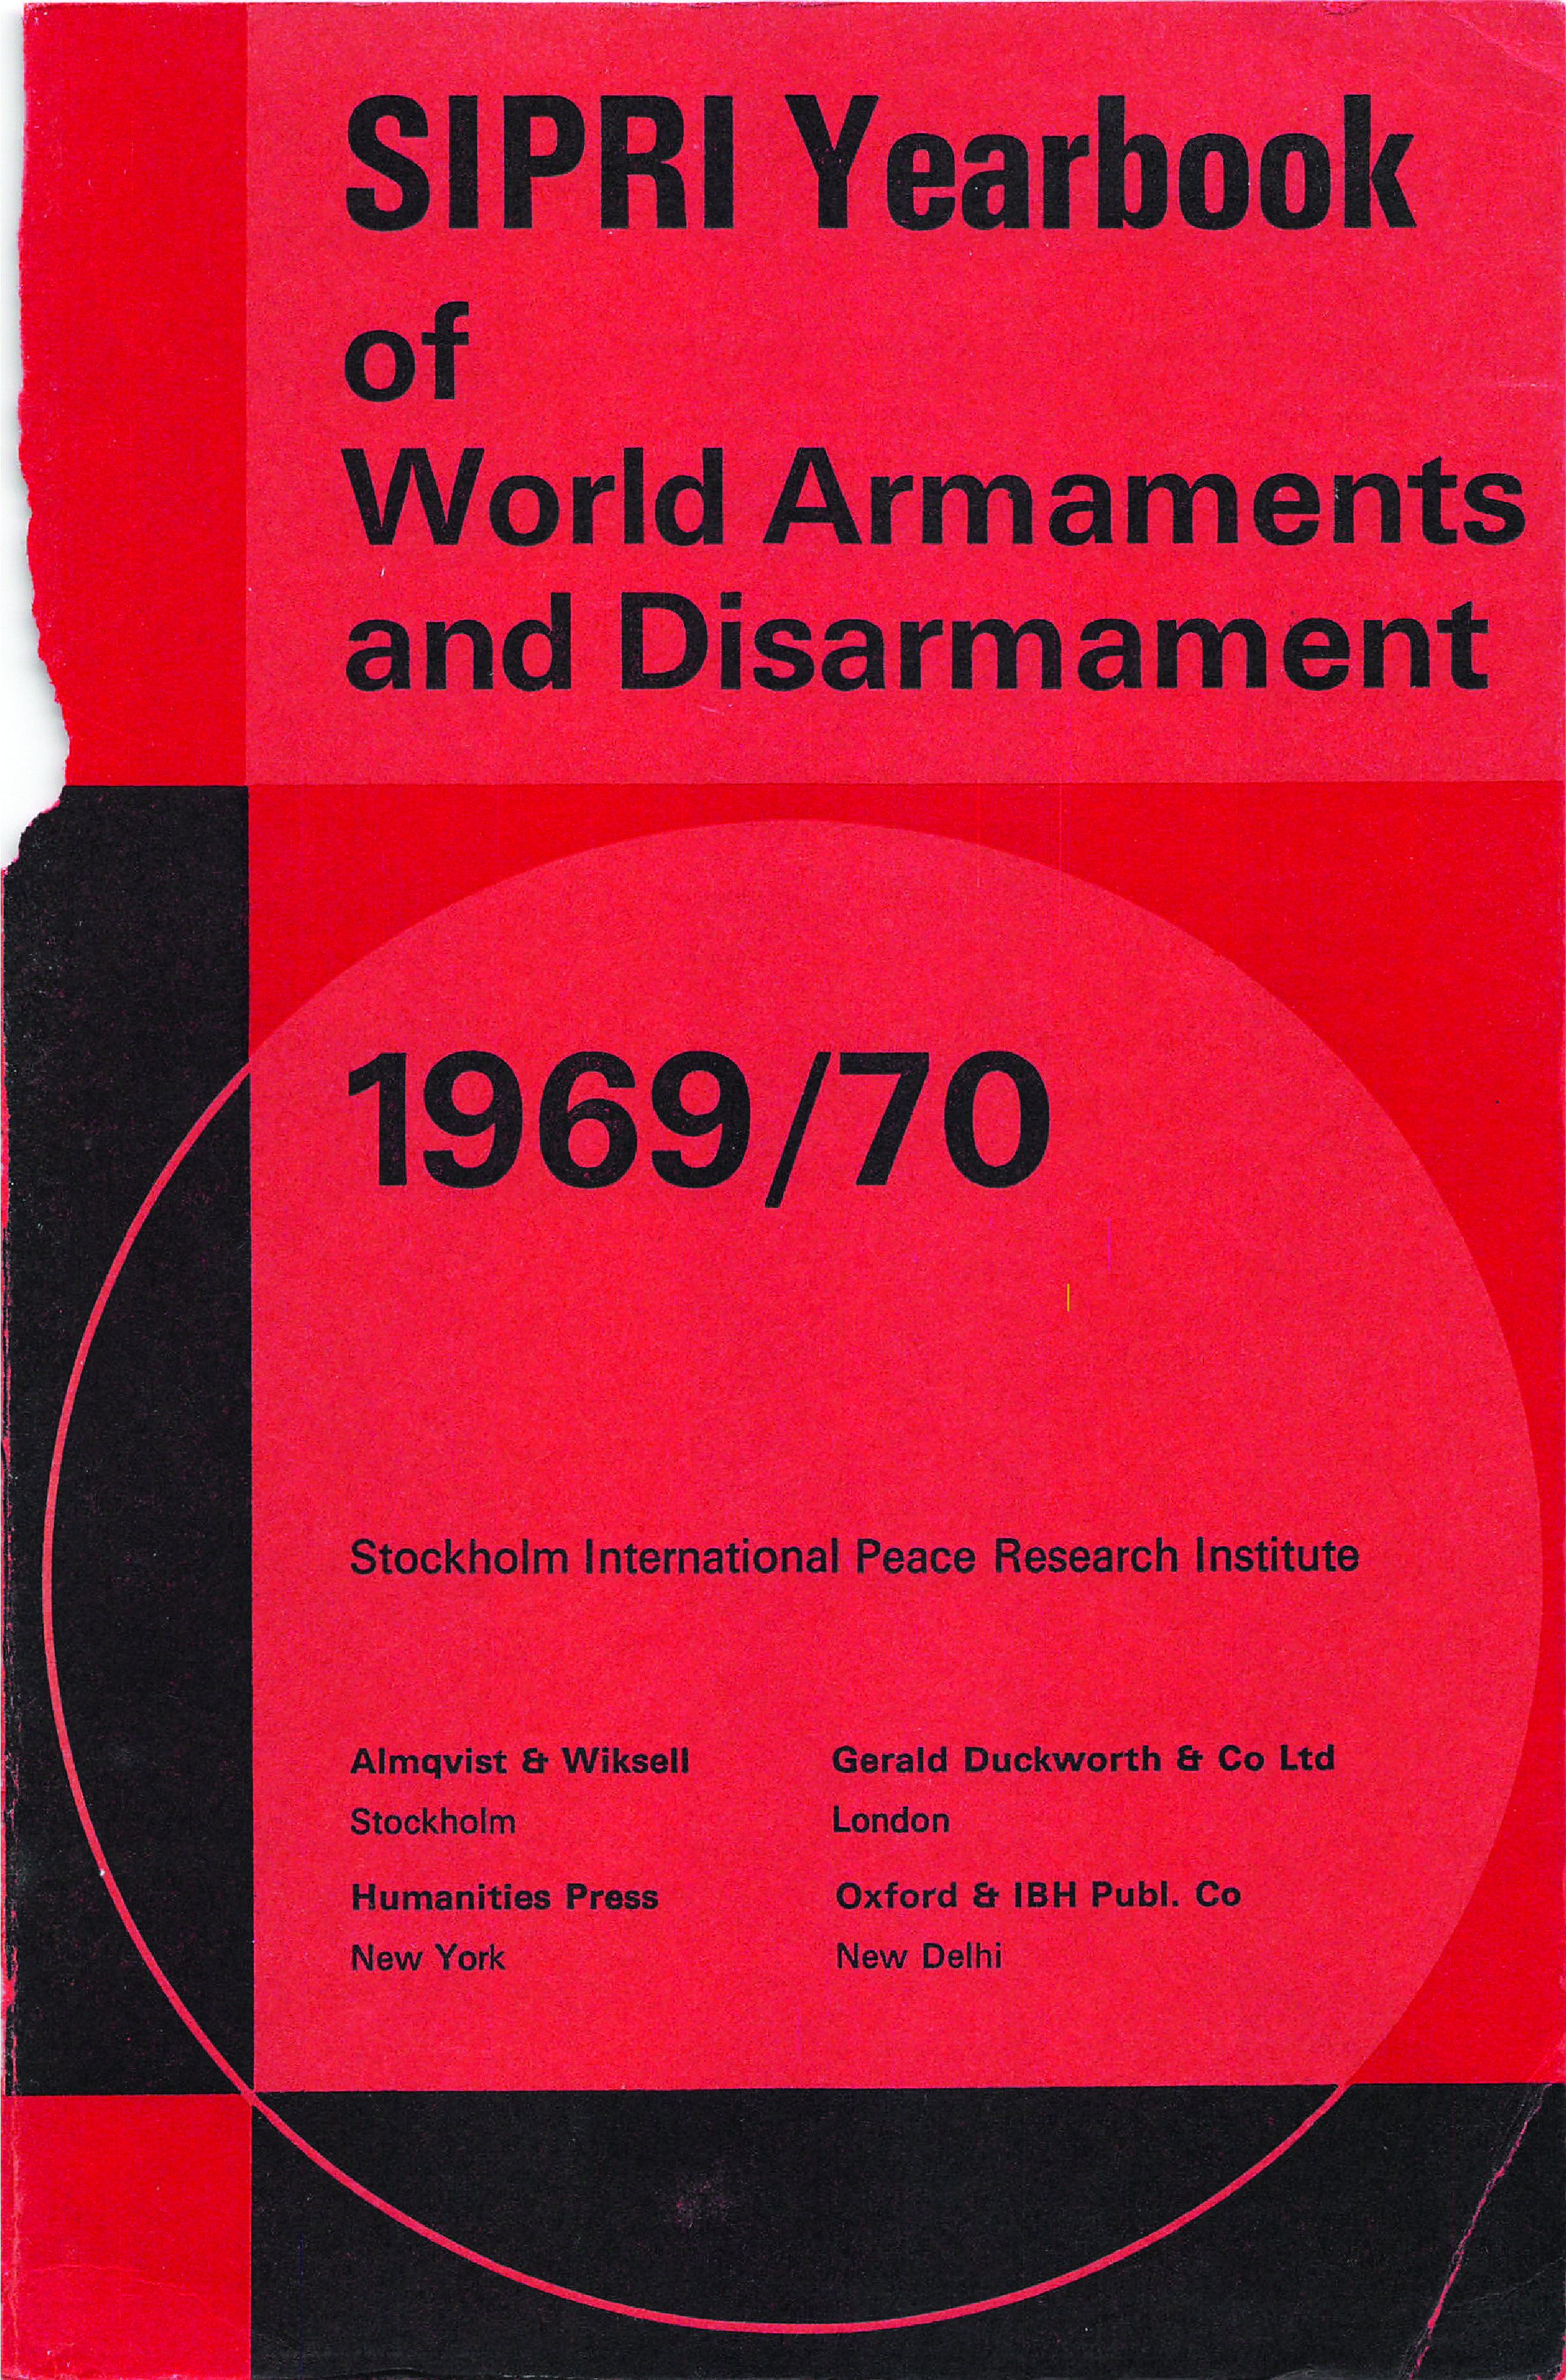 SIPRI yearbook 1969-70 cover